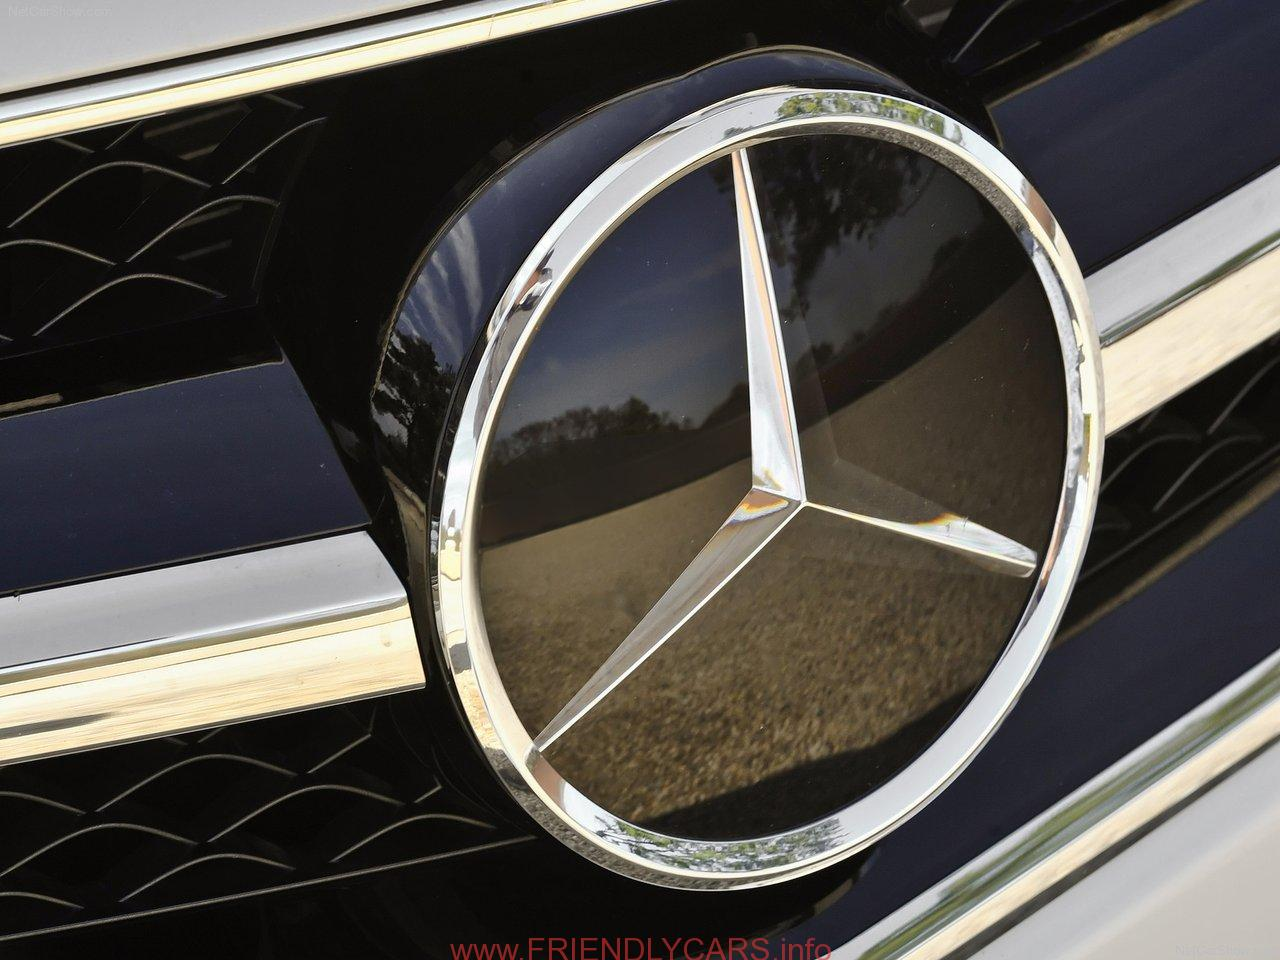 awesome mercedes amg logo wallpaper car images hd All cars 1280x960